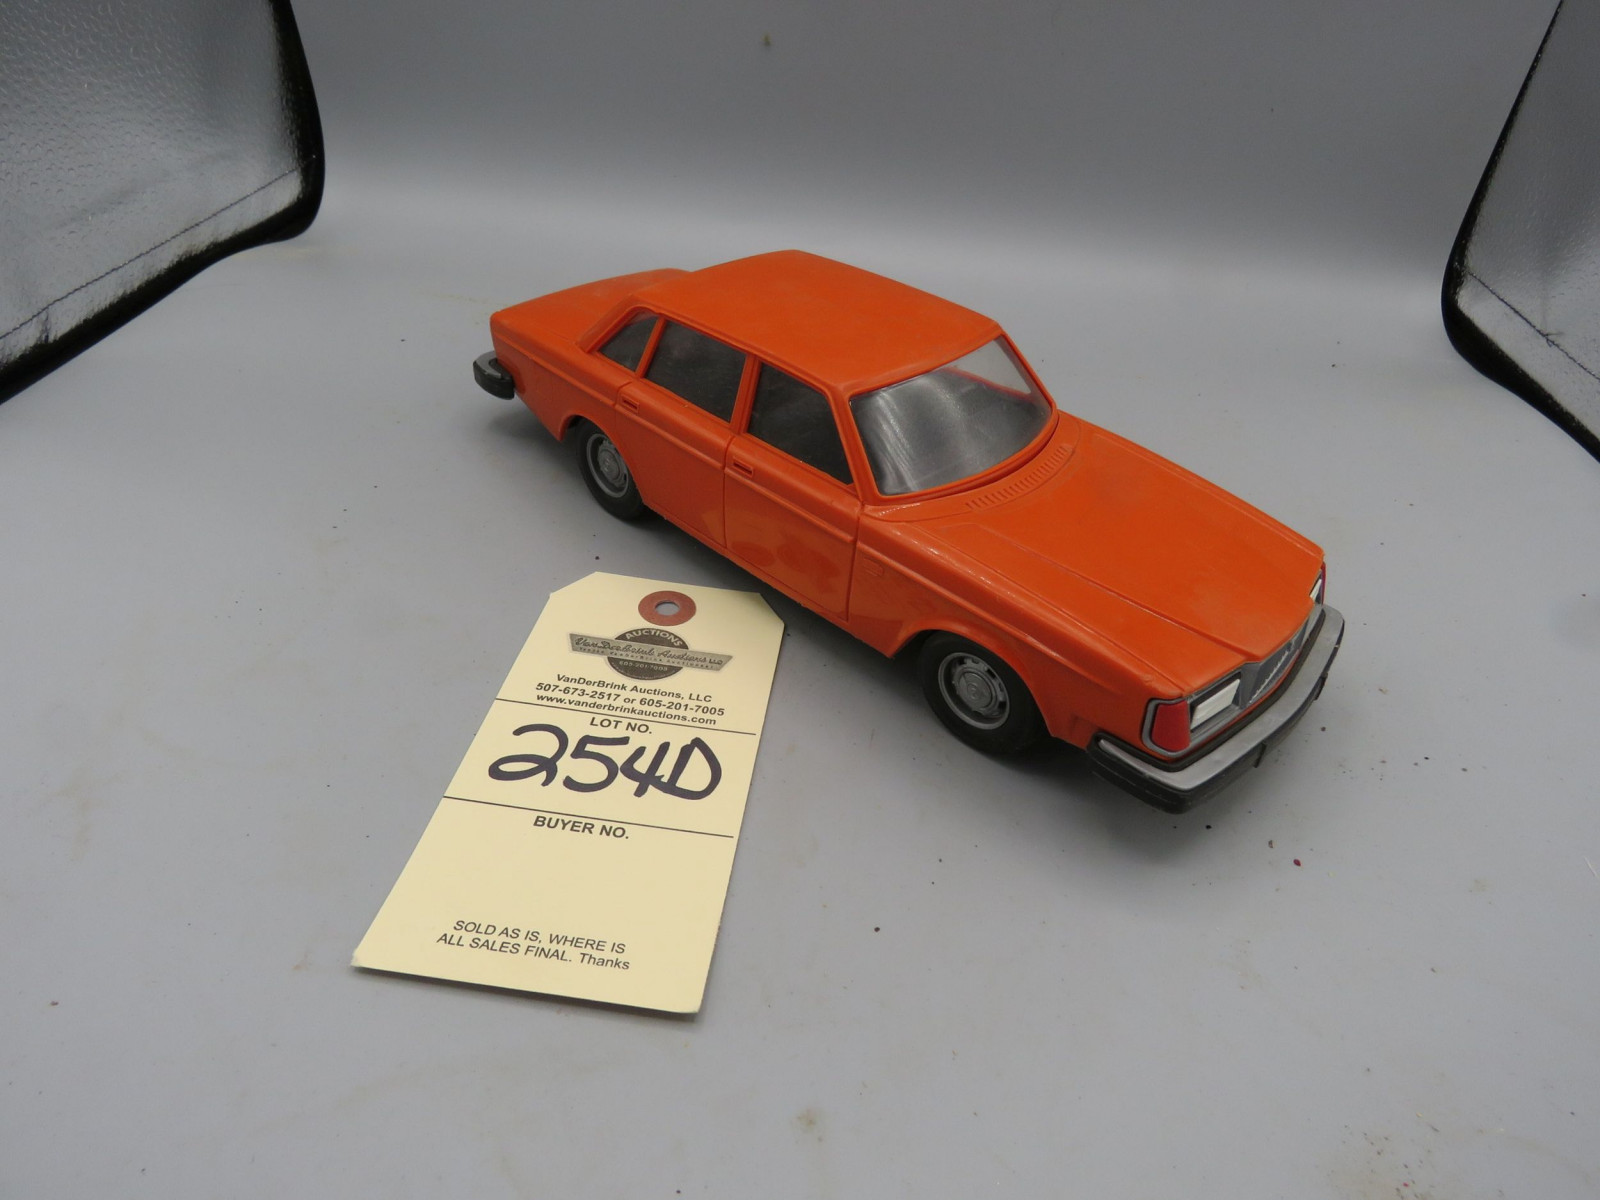 Volvo 264Gl Promotional Model Car NIB Plastic - Image 1